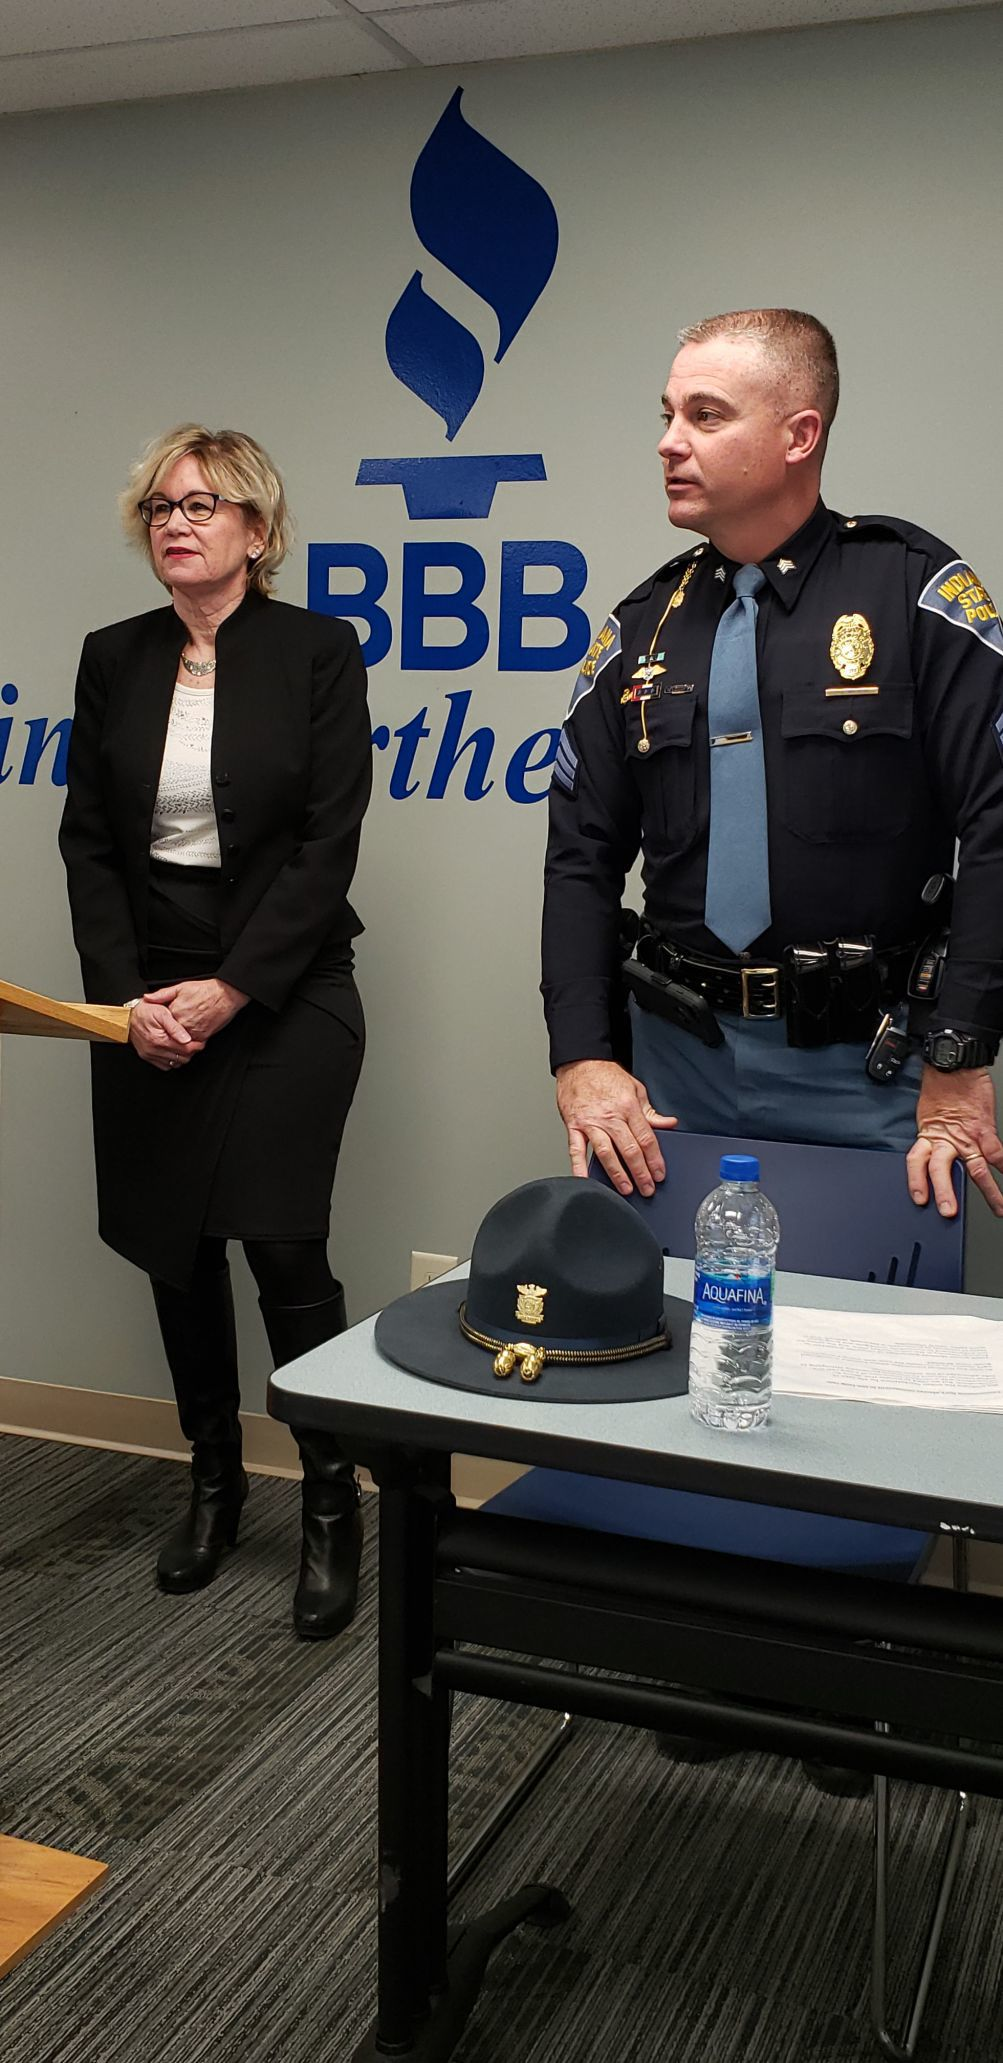 Marjorie Stephens, Better Business Bureau, and Brian Walker, Indiana State Police